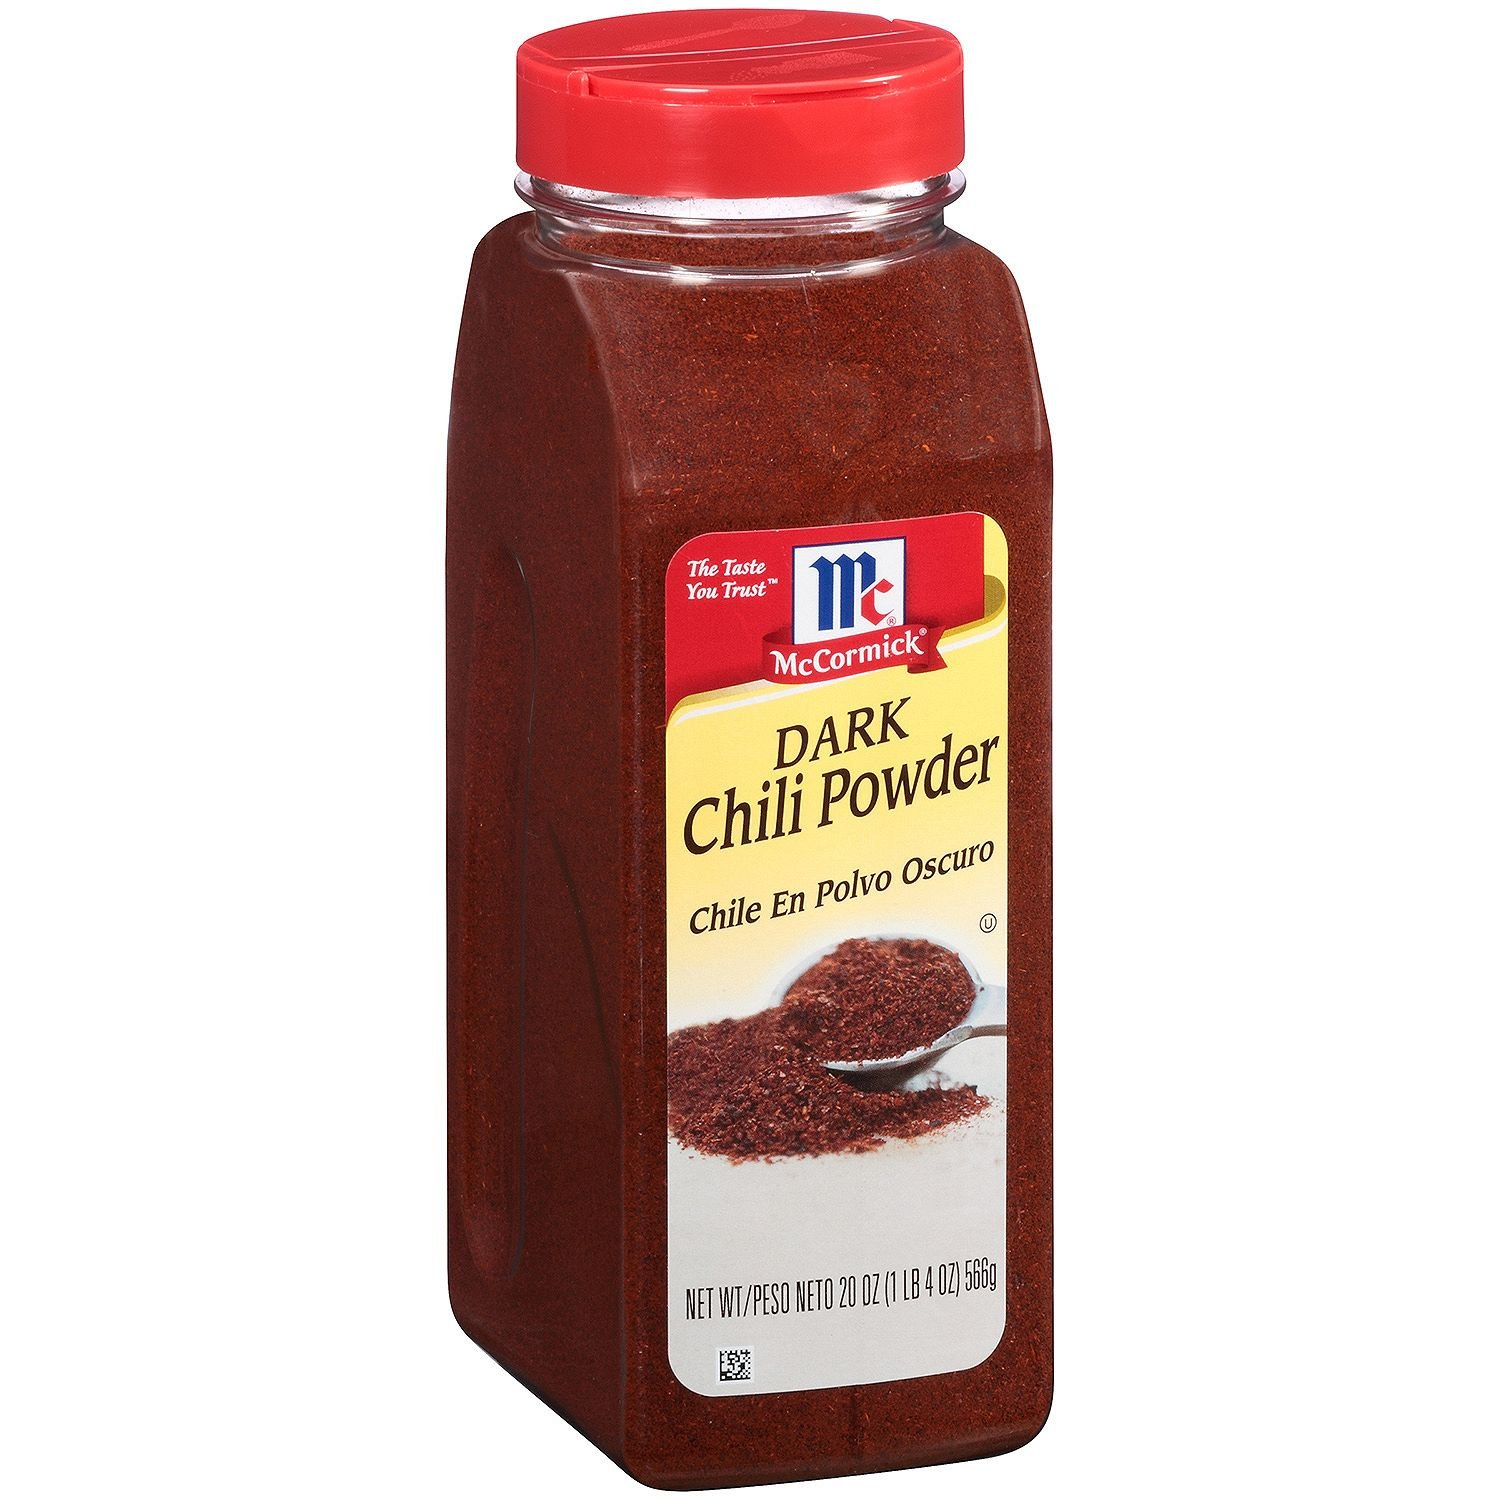 McCormick Dark Chili Powder (20 oz.) (pack of 2)